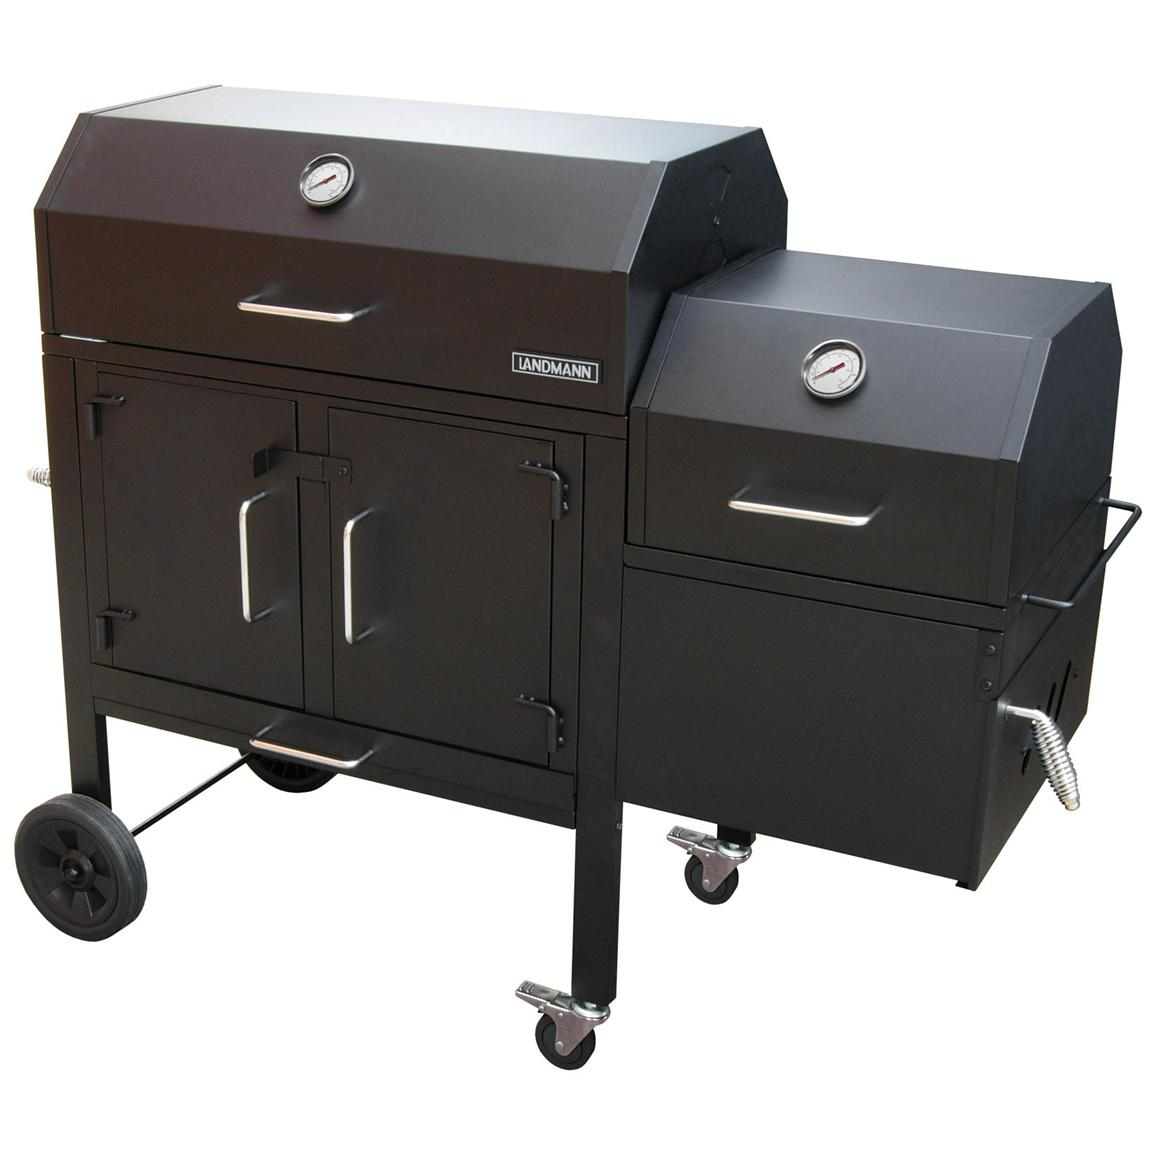 black dog 42xt charcoal grill and smoker 231713 grills smokers at sportsman 39 s guide. Black Bedroom Furniture Sets. Home Design Ideas